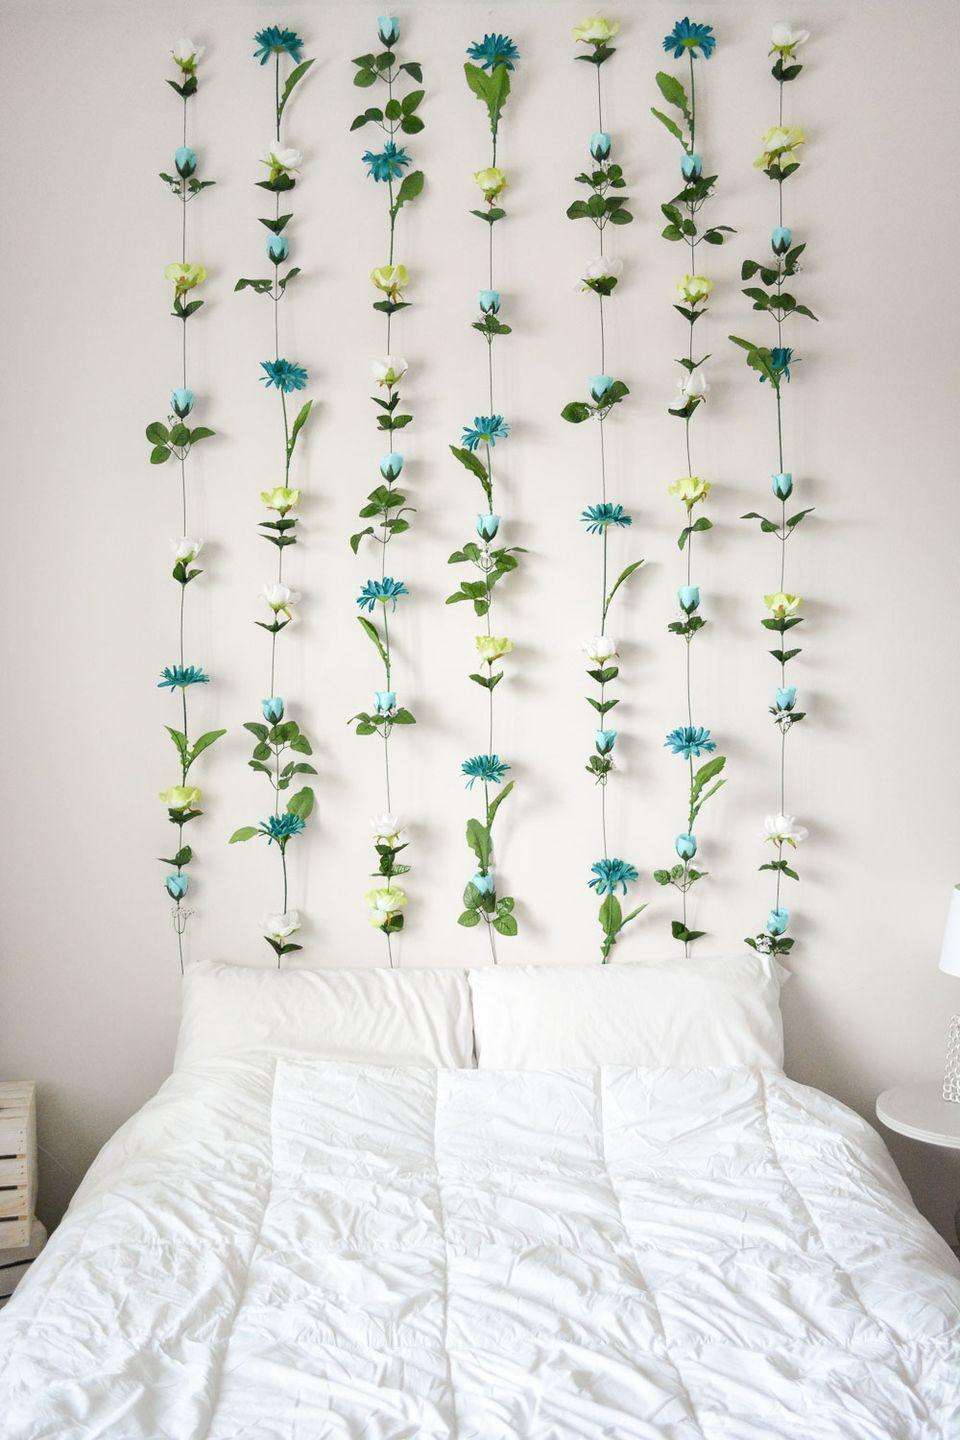 "<p>Who needs a <a href=""https://www.housebeautiful.com/room-decorating/bedrooms/g717/headboard-designs/"" rel=""nofollow noopener"" target=""_blank"" data-ylk=""slk:headboard"" class=""link rapid-noclick-resp"">headboard</a> when you can have a full-on wall of flowers? Total boho goals. Get the tutorial at <a href=""http://sweetteal.com/2016/07/diy-flower-wall/"" rel=""nofollow noopener"" target=""_blank"" data-ylk=""slk:Sweet Teal"" class=""link rapid-noclick-resp"">Sweet Teal</a>.</p>"